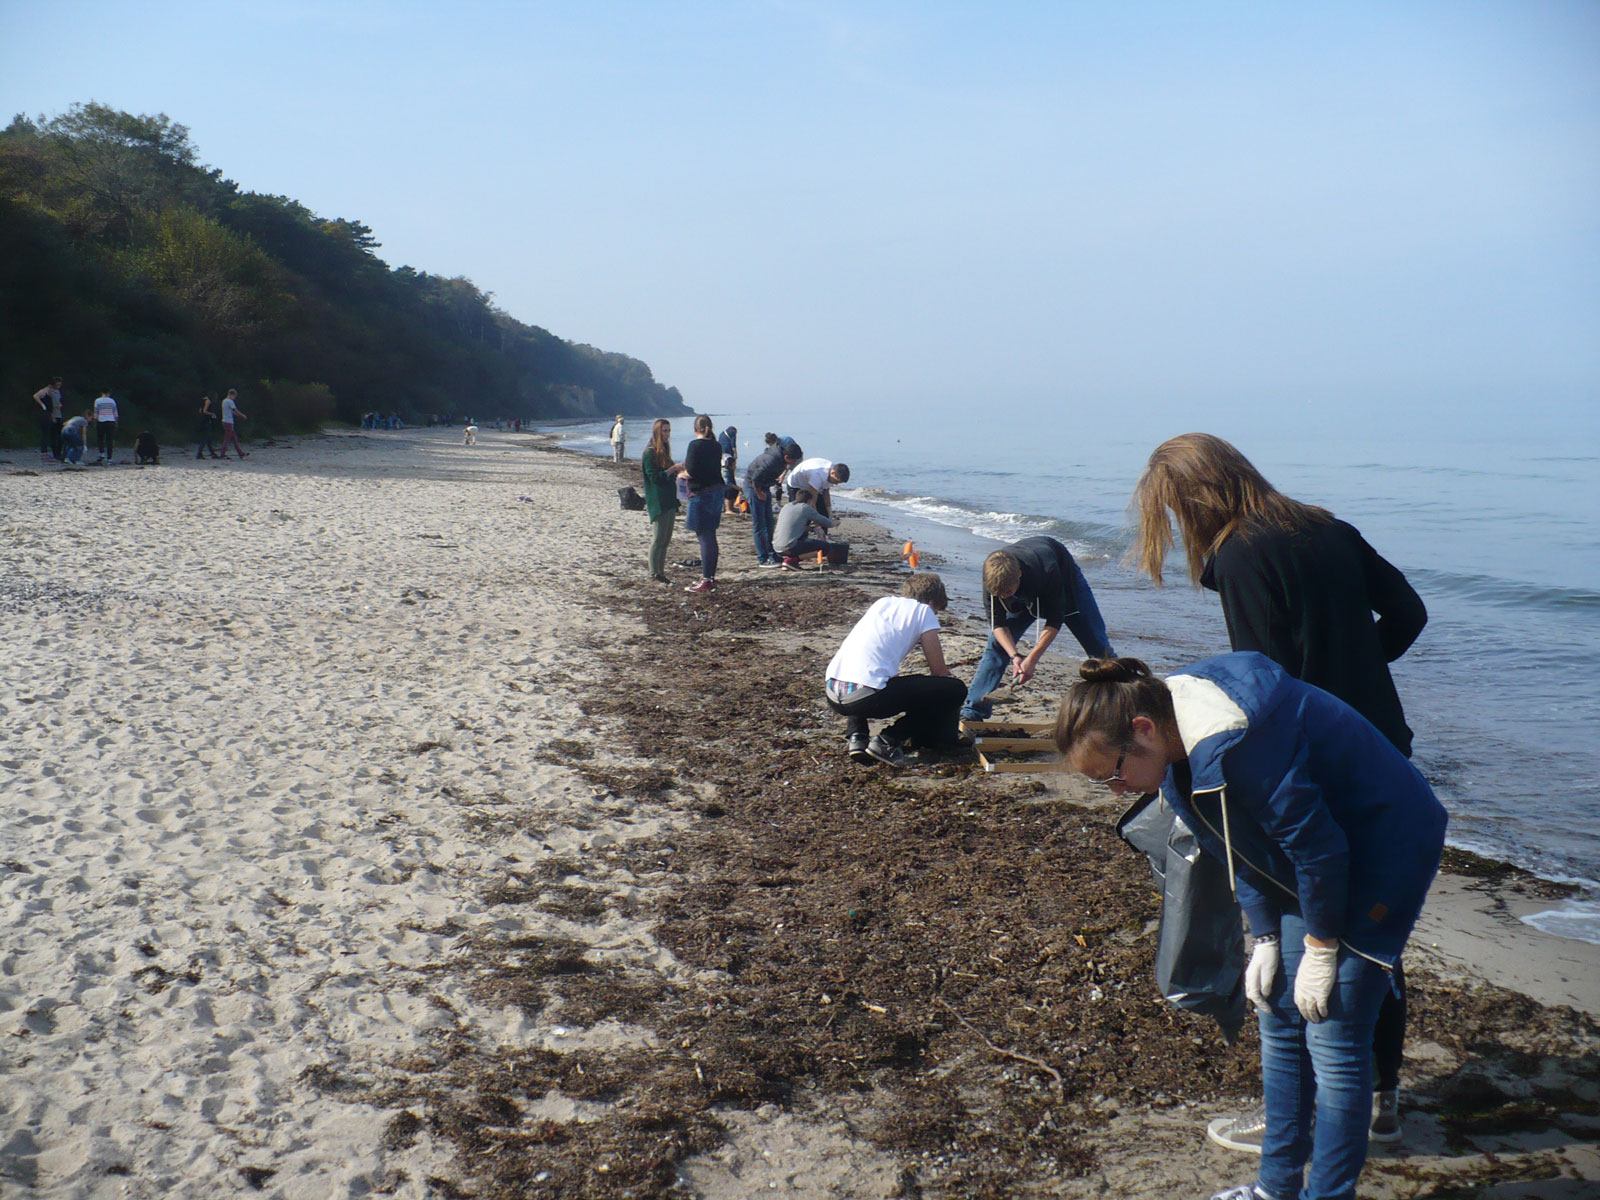 People on a beach are looking at seagrass.